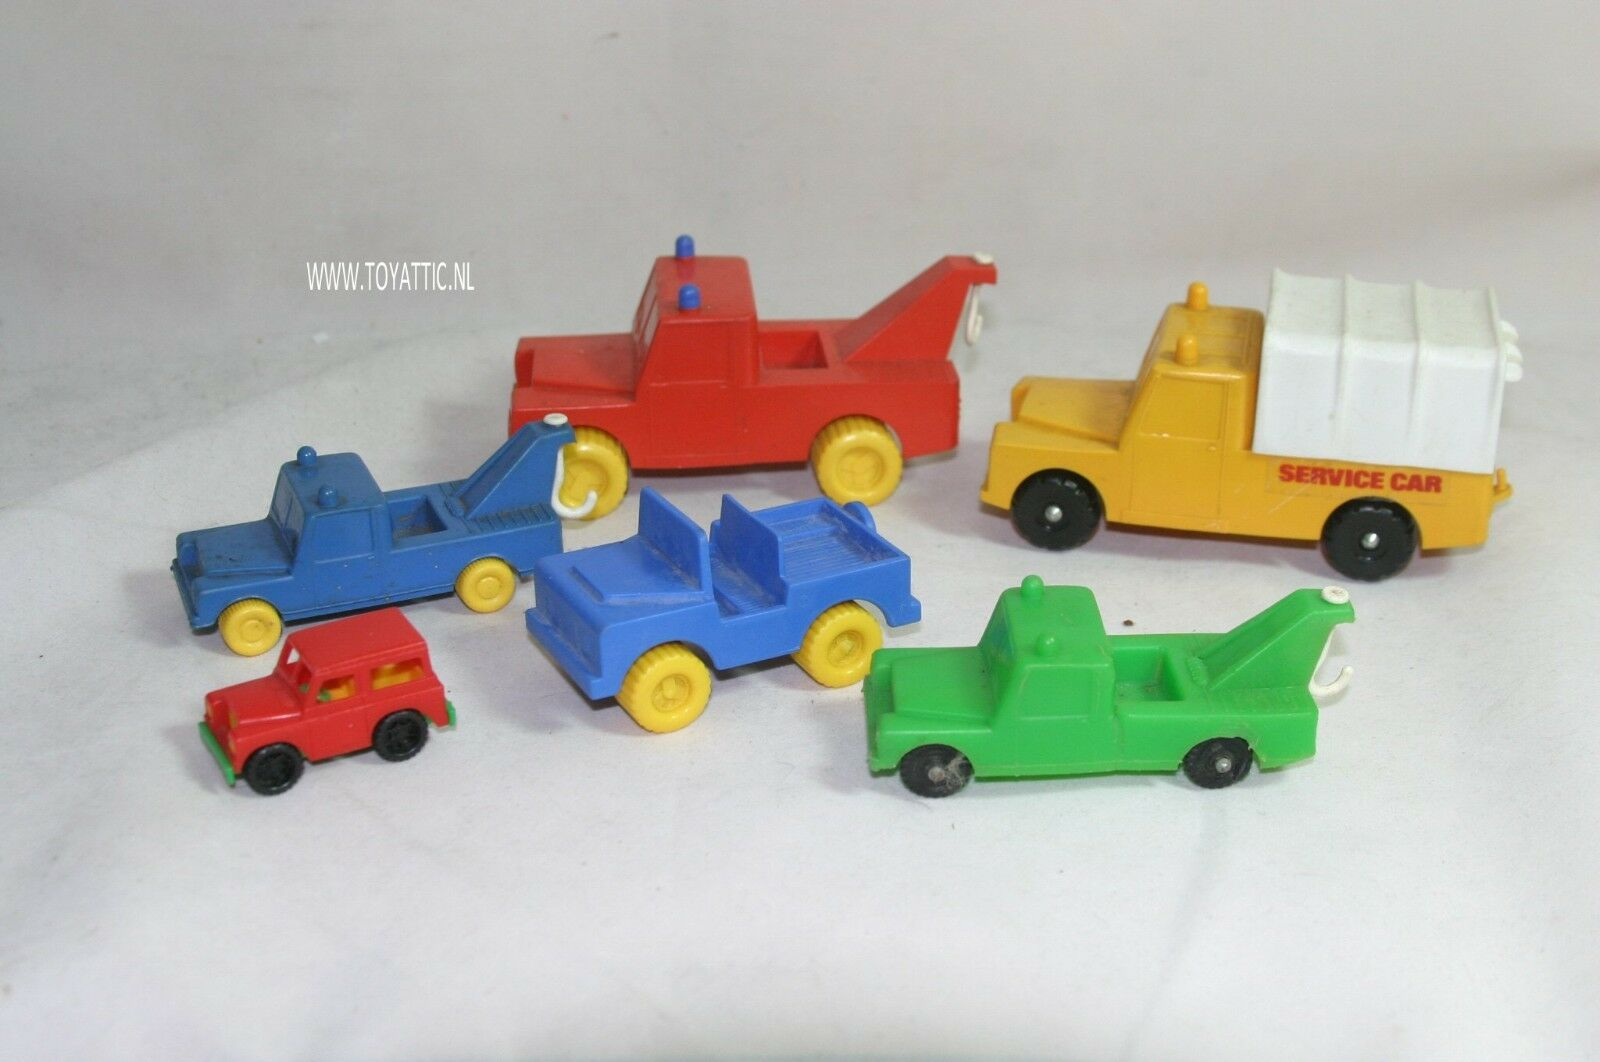 Land rover set of 6 vintage plastic cars landrover in good condition